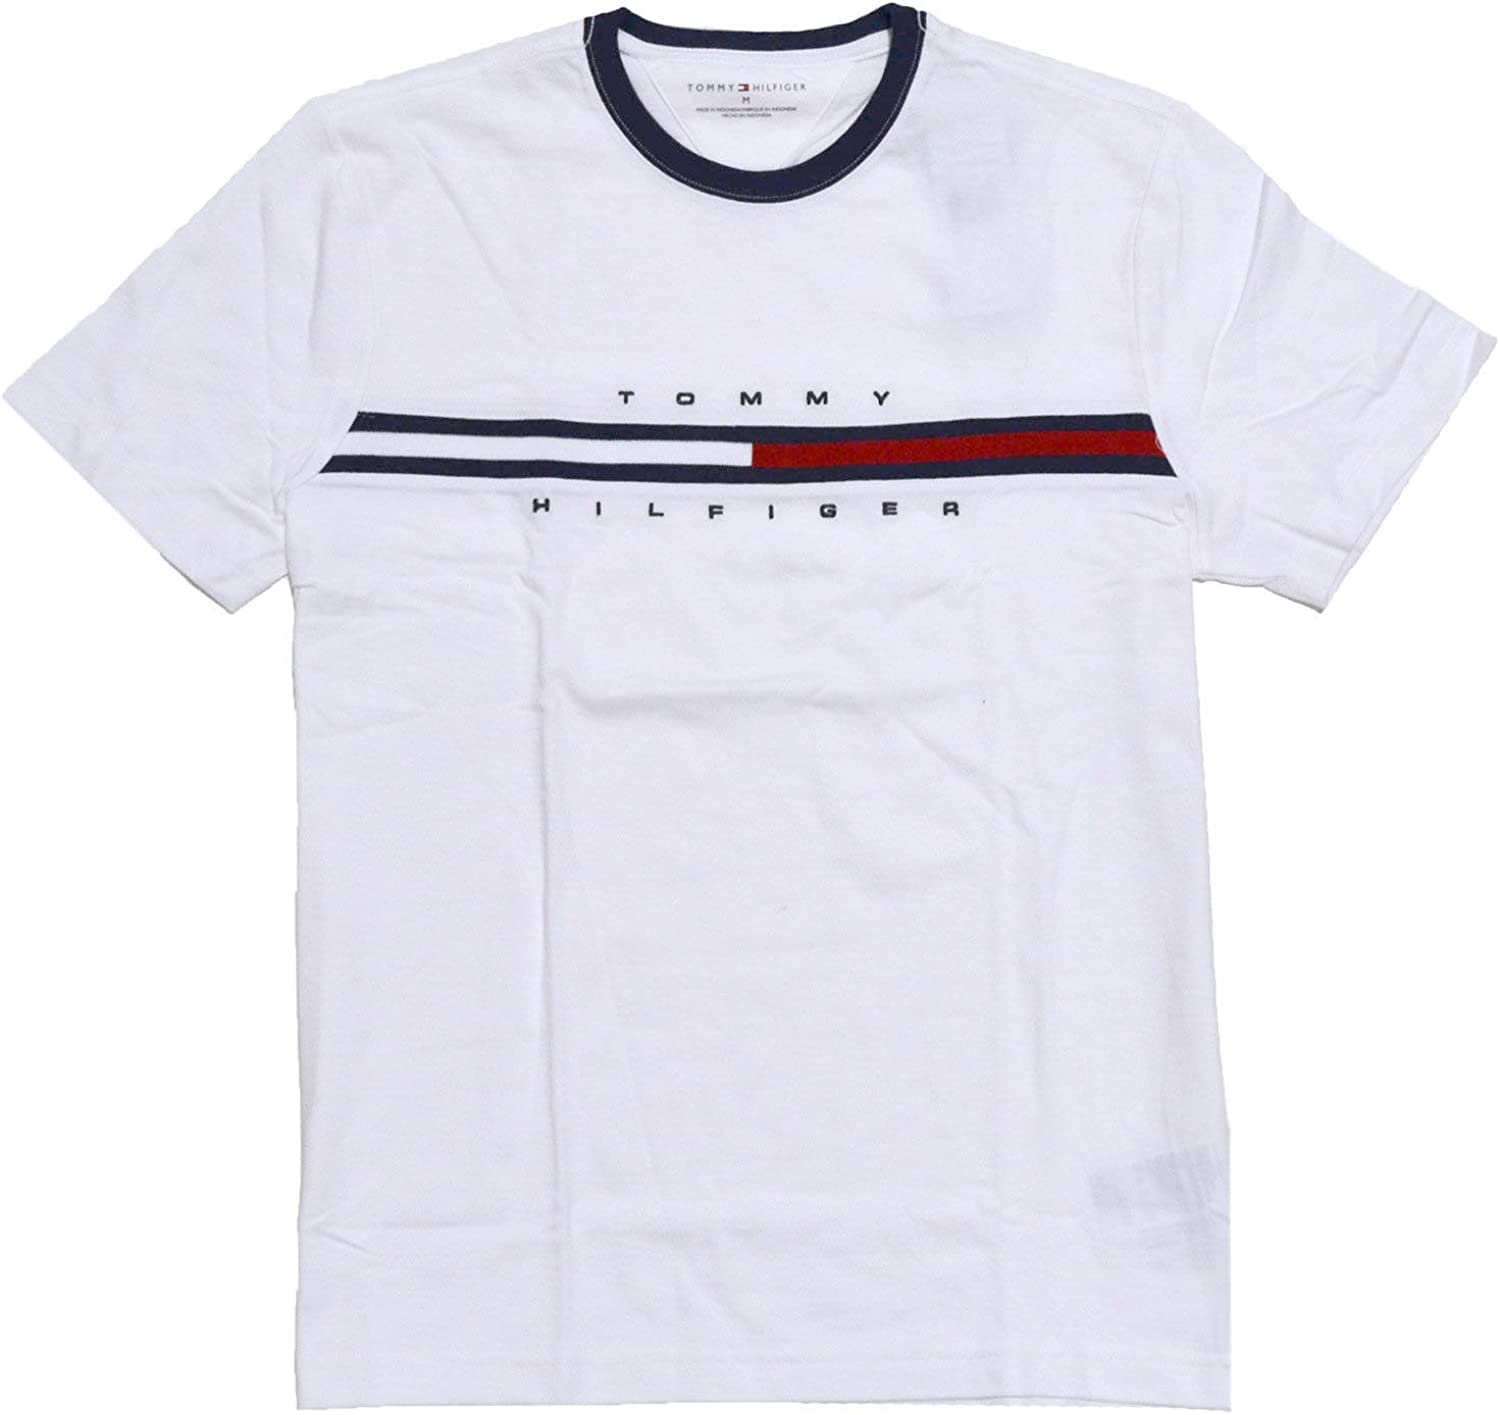 Tommy Hilfiger mens clothing from